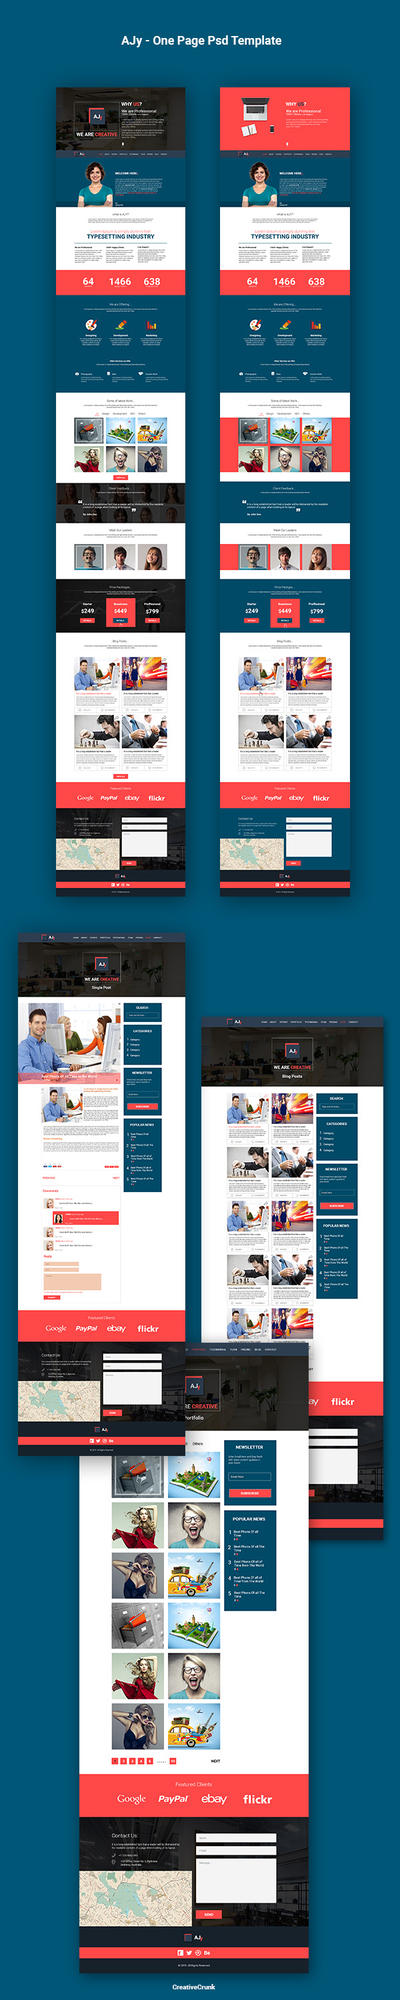 AJy One Page Psd Template by CreativeCrunk